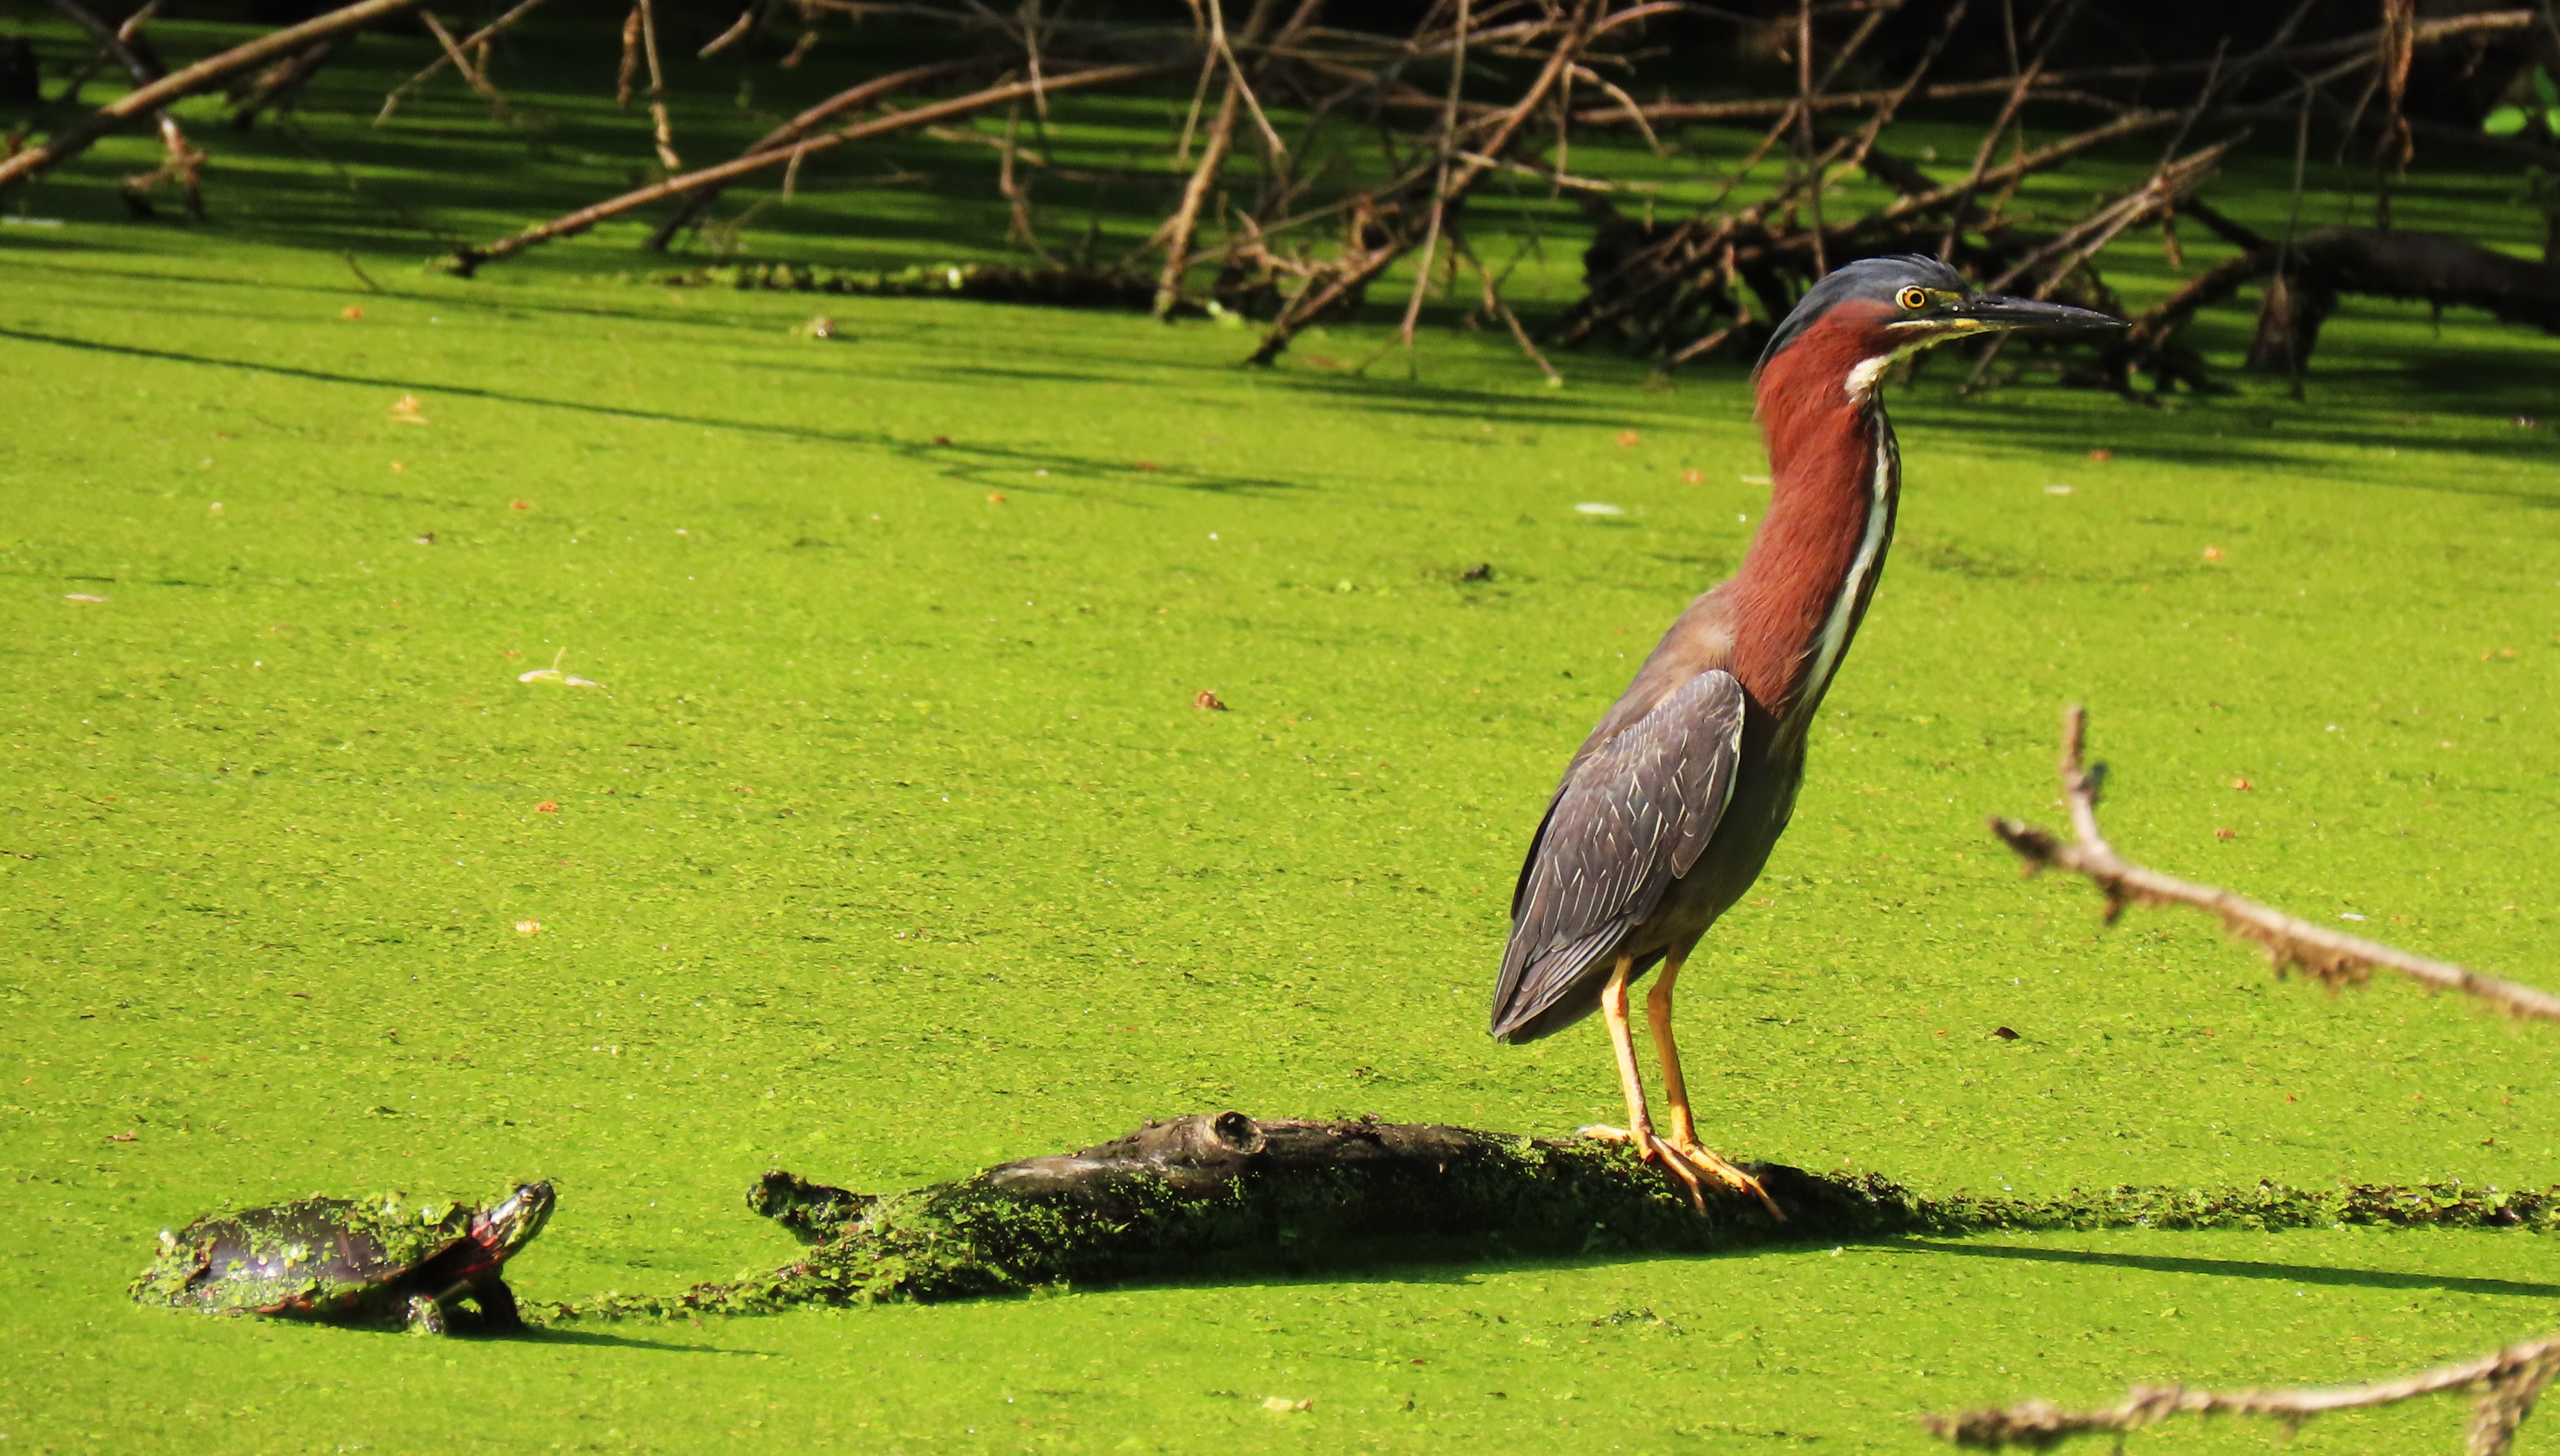 A green heron stands on a partially submerged log in a duckweed-covered pond